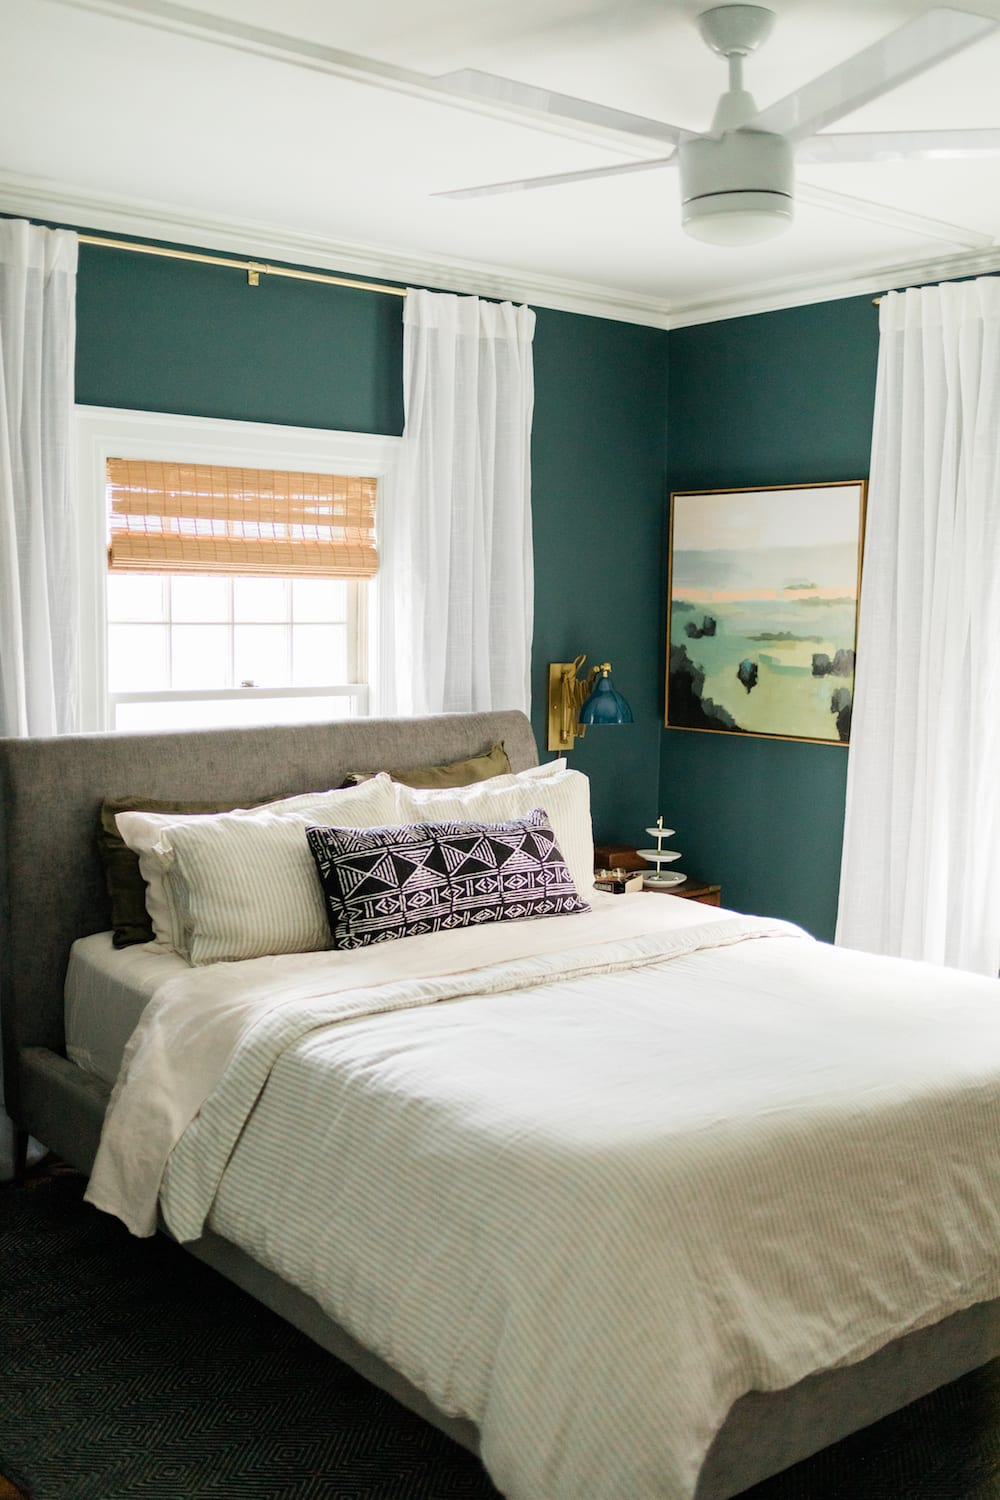 Small Master Bedroom Ideas - EasyCare Ultra Premium Paint Review - EasyCare Gothic Gray